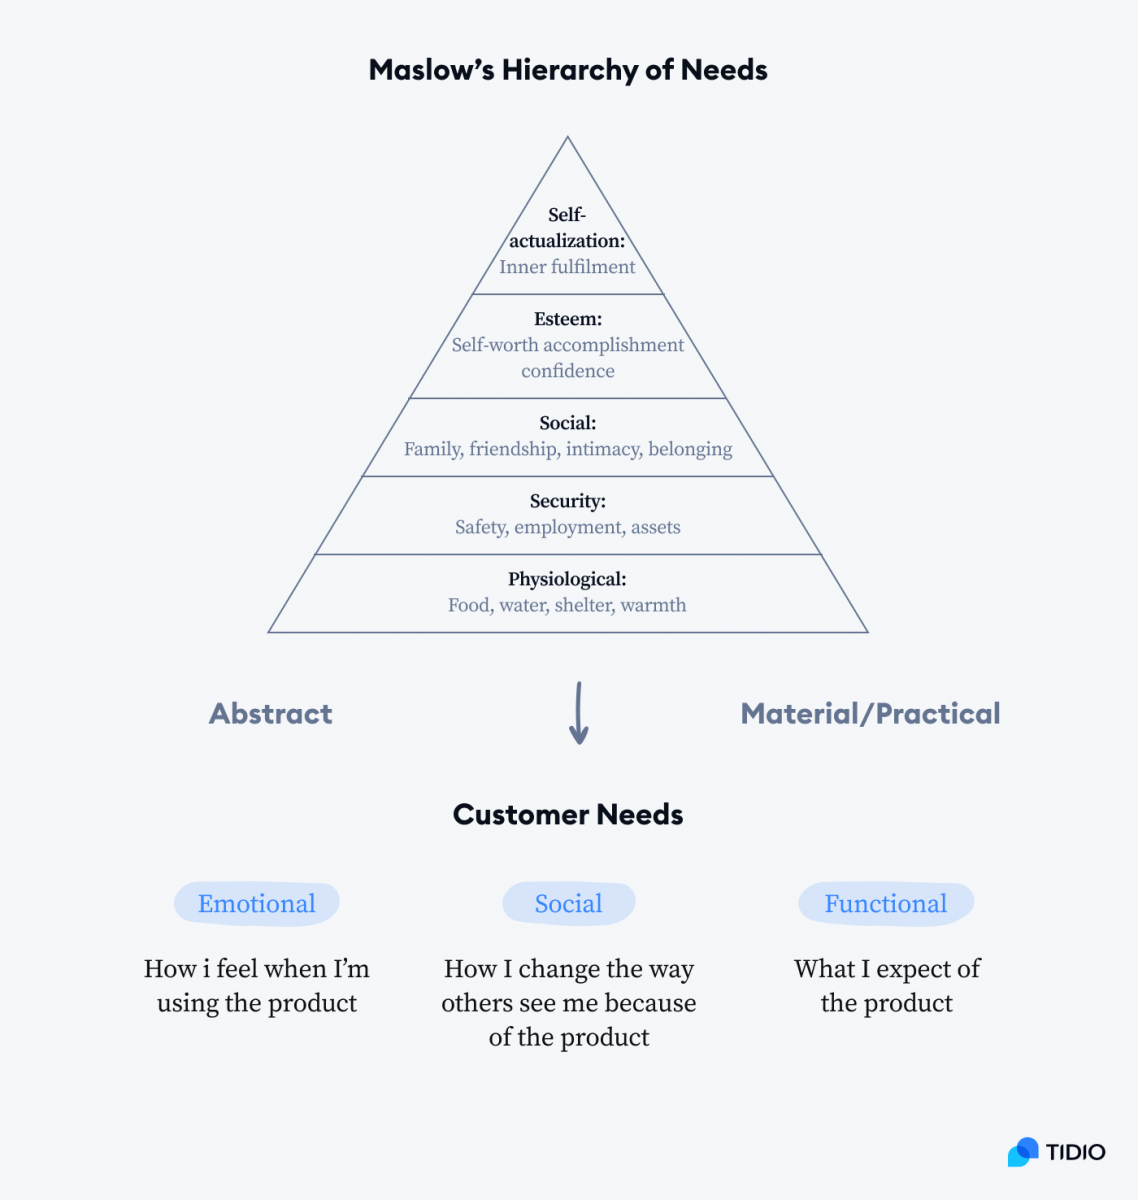 Maslow's hirarchy of needs